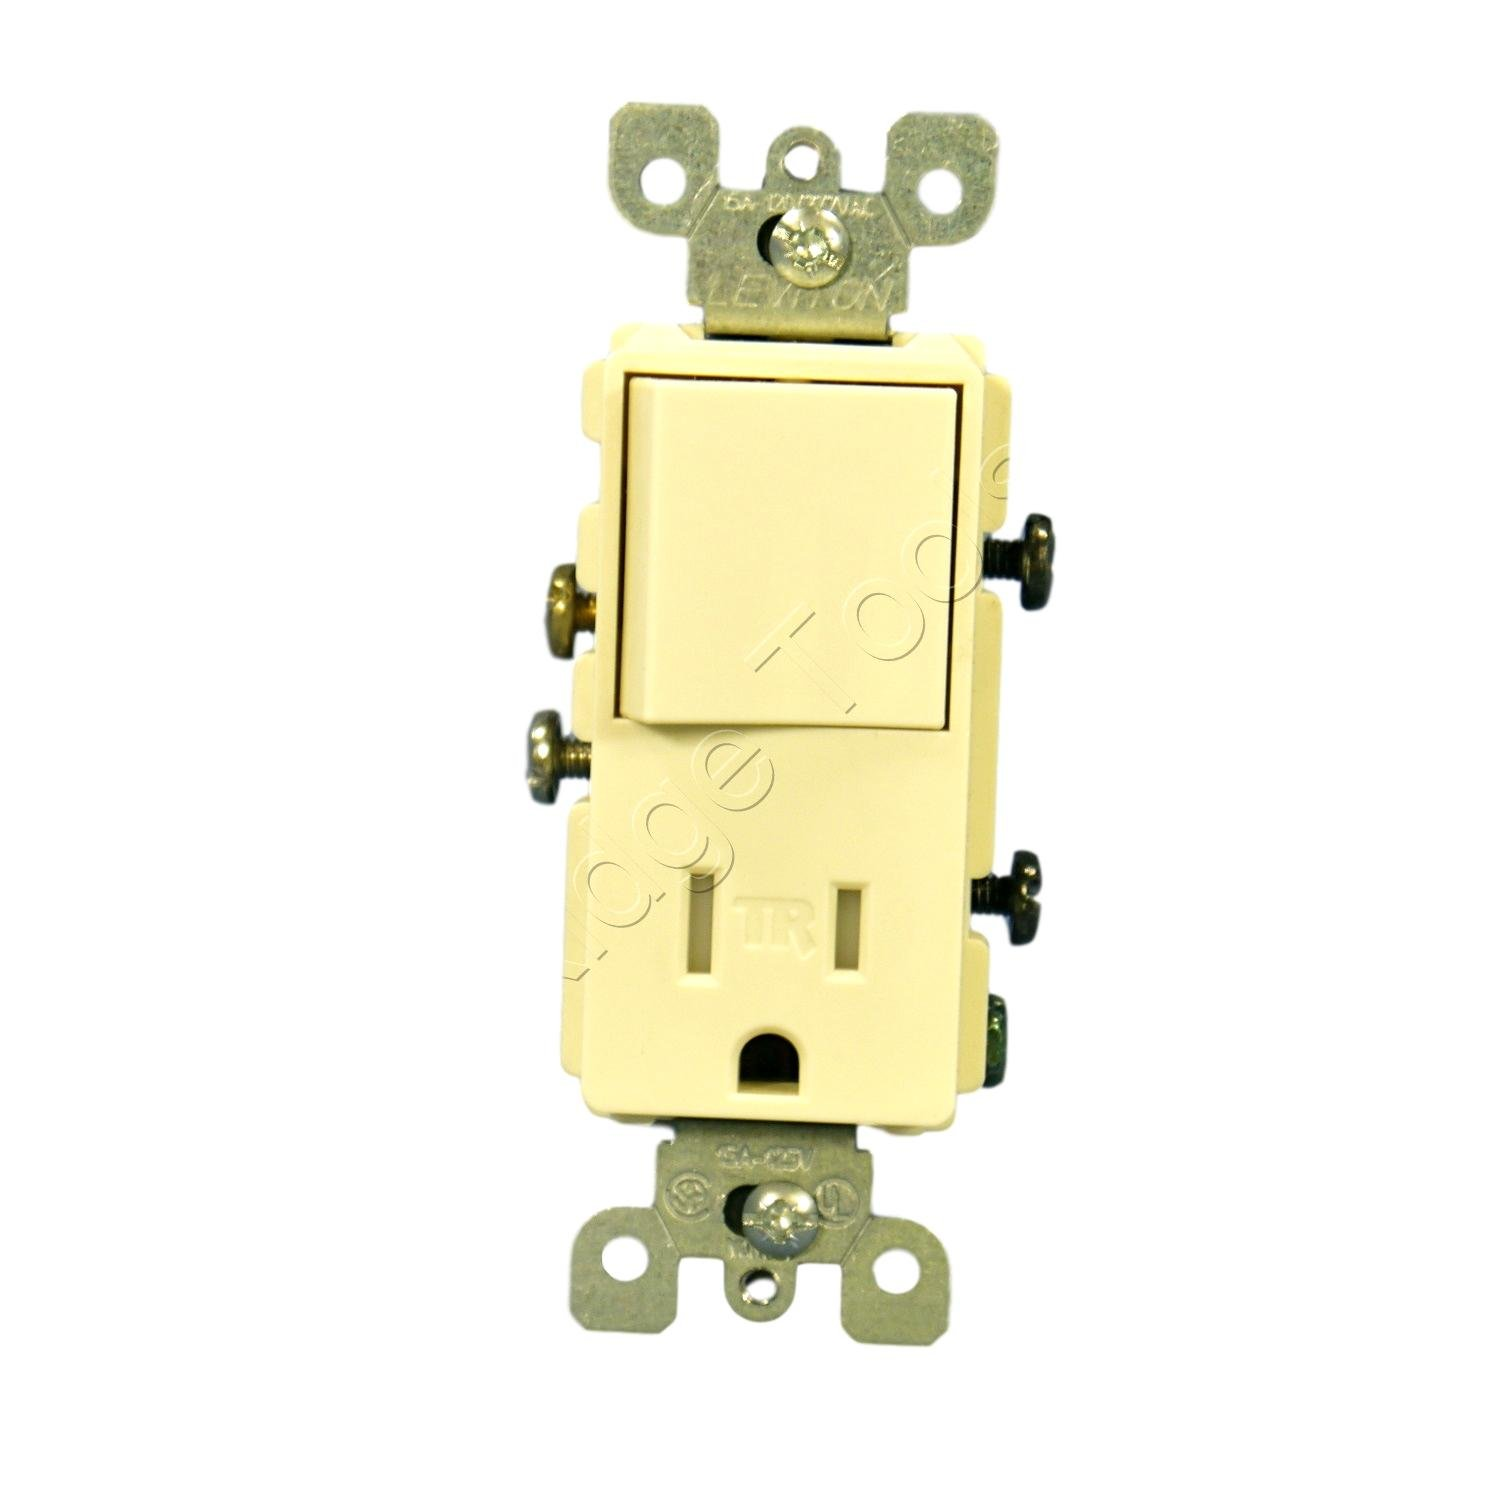 Leviton T5625-A Decora Combination Switch and Tamper-Resistant Receptacle, Almond